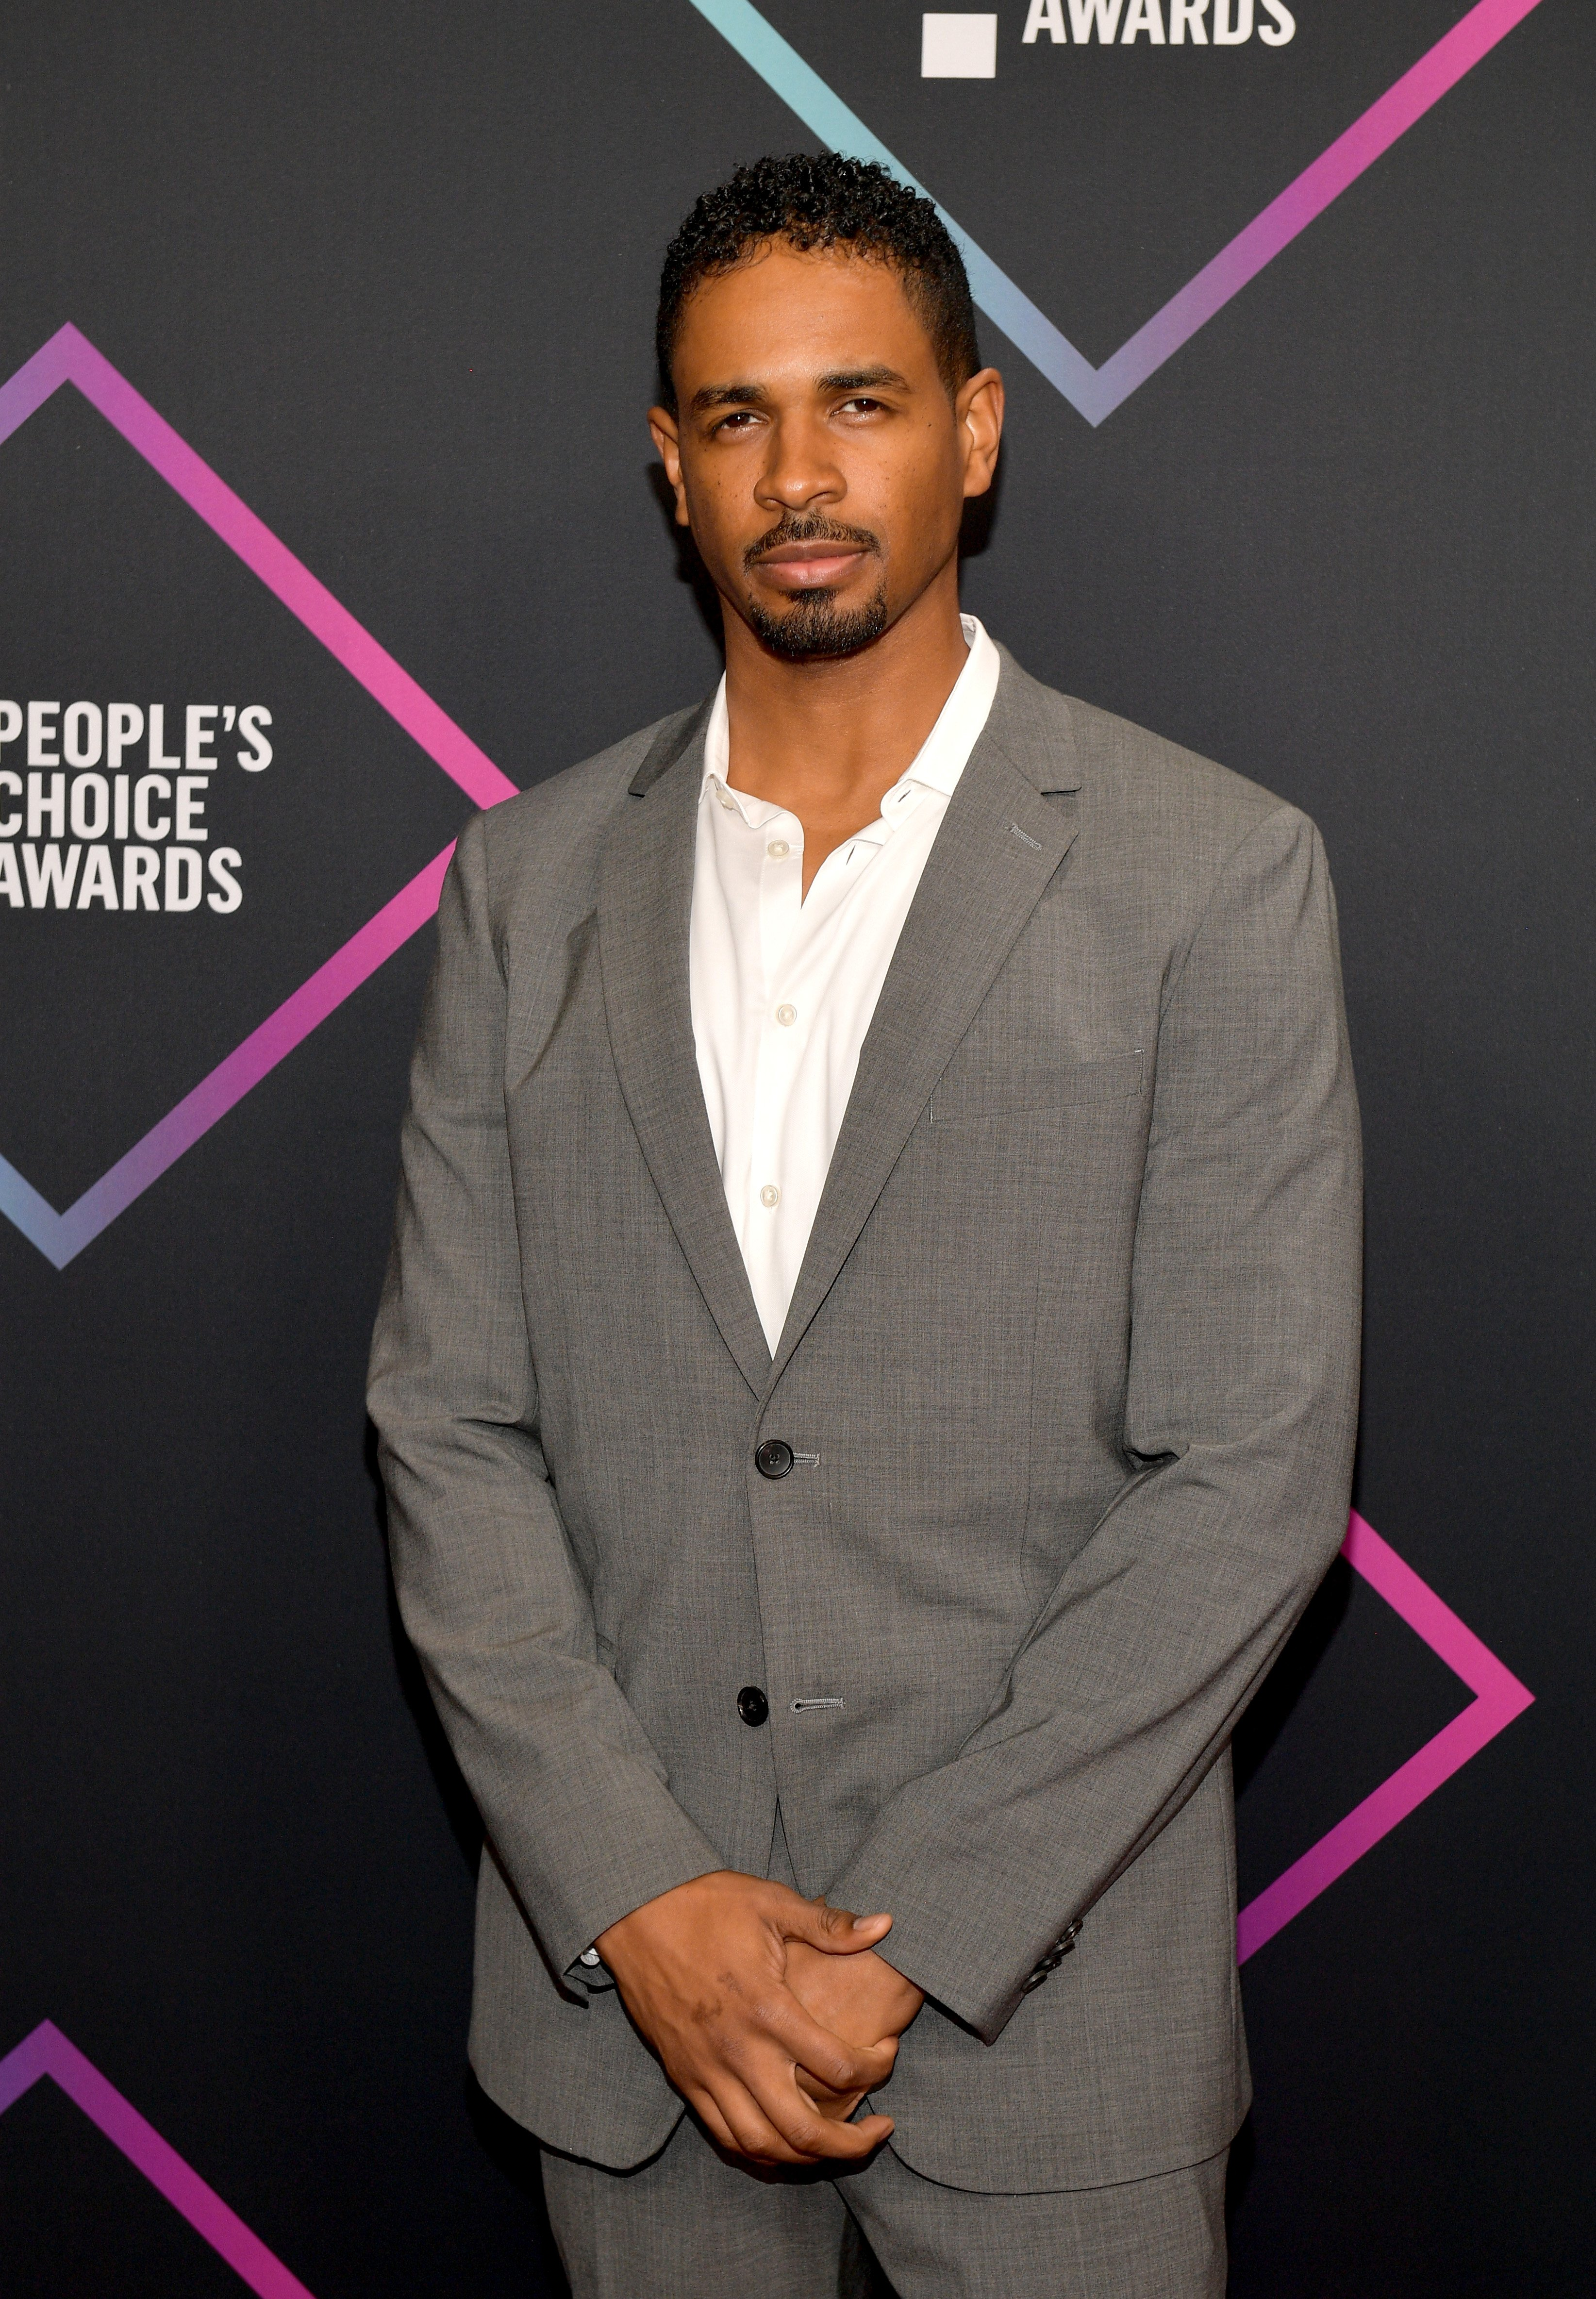 Image Credits: Getty Images / Matt Winkelmeyer | Damon Wayans Jr. attends the People's Choice Awards 2018 at Barker Hangar on November 11, 2018 in Santa Monica, California.